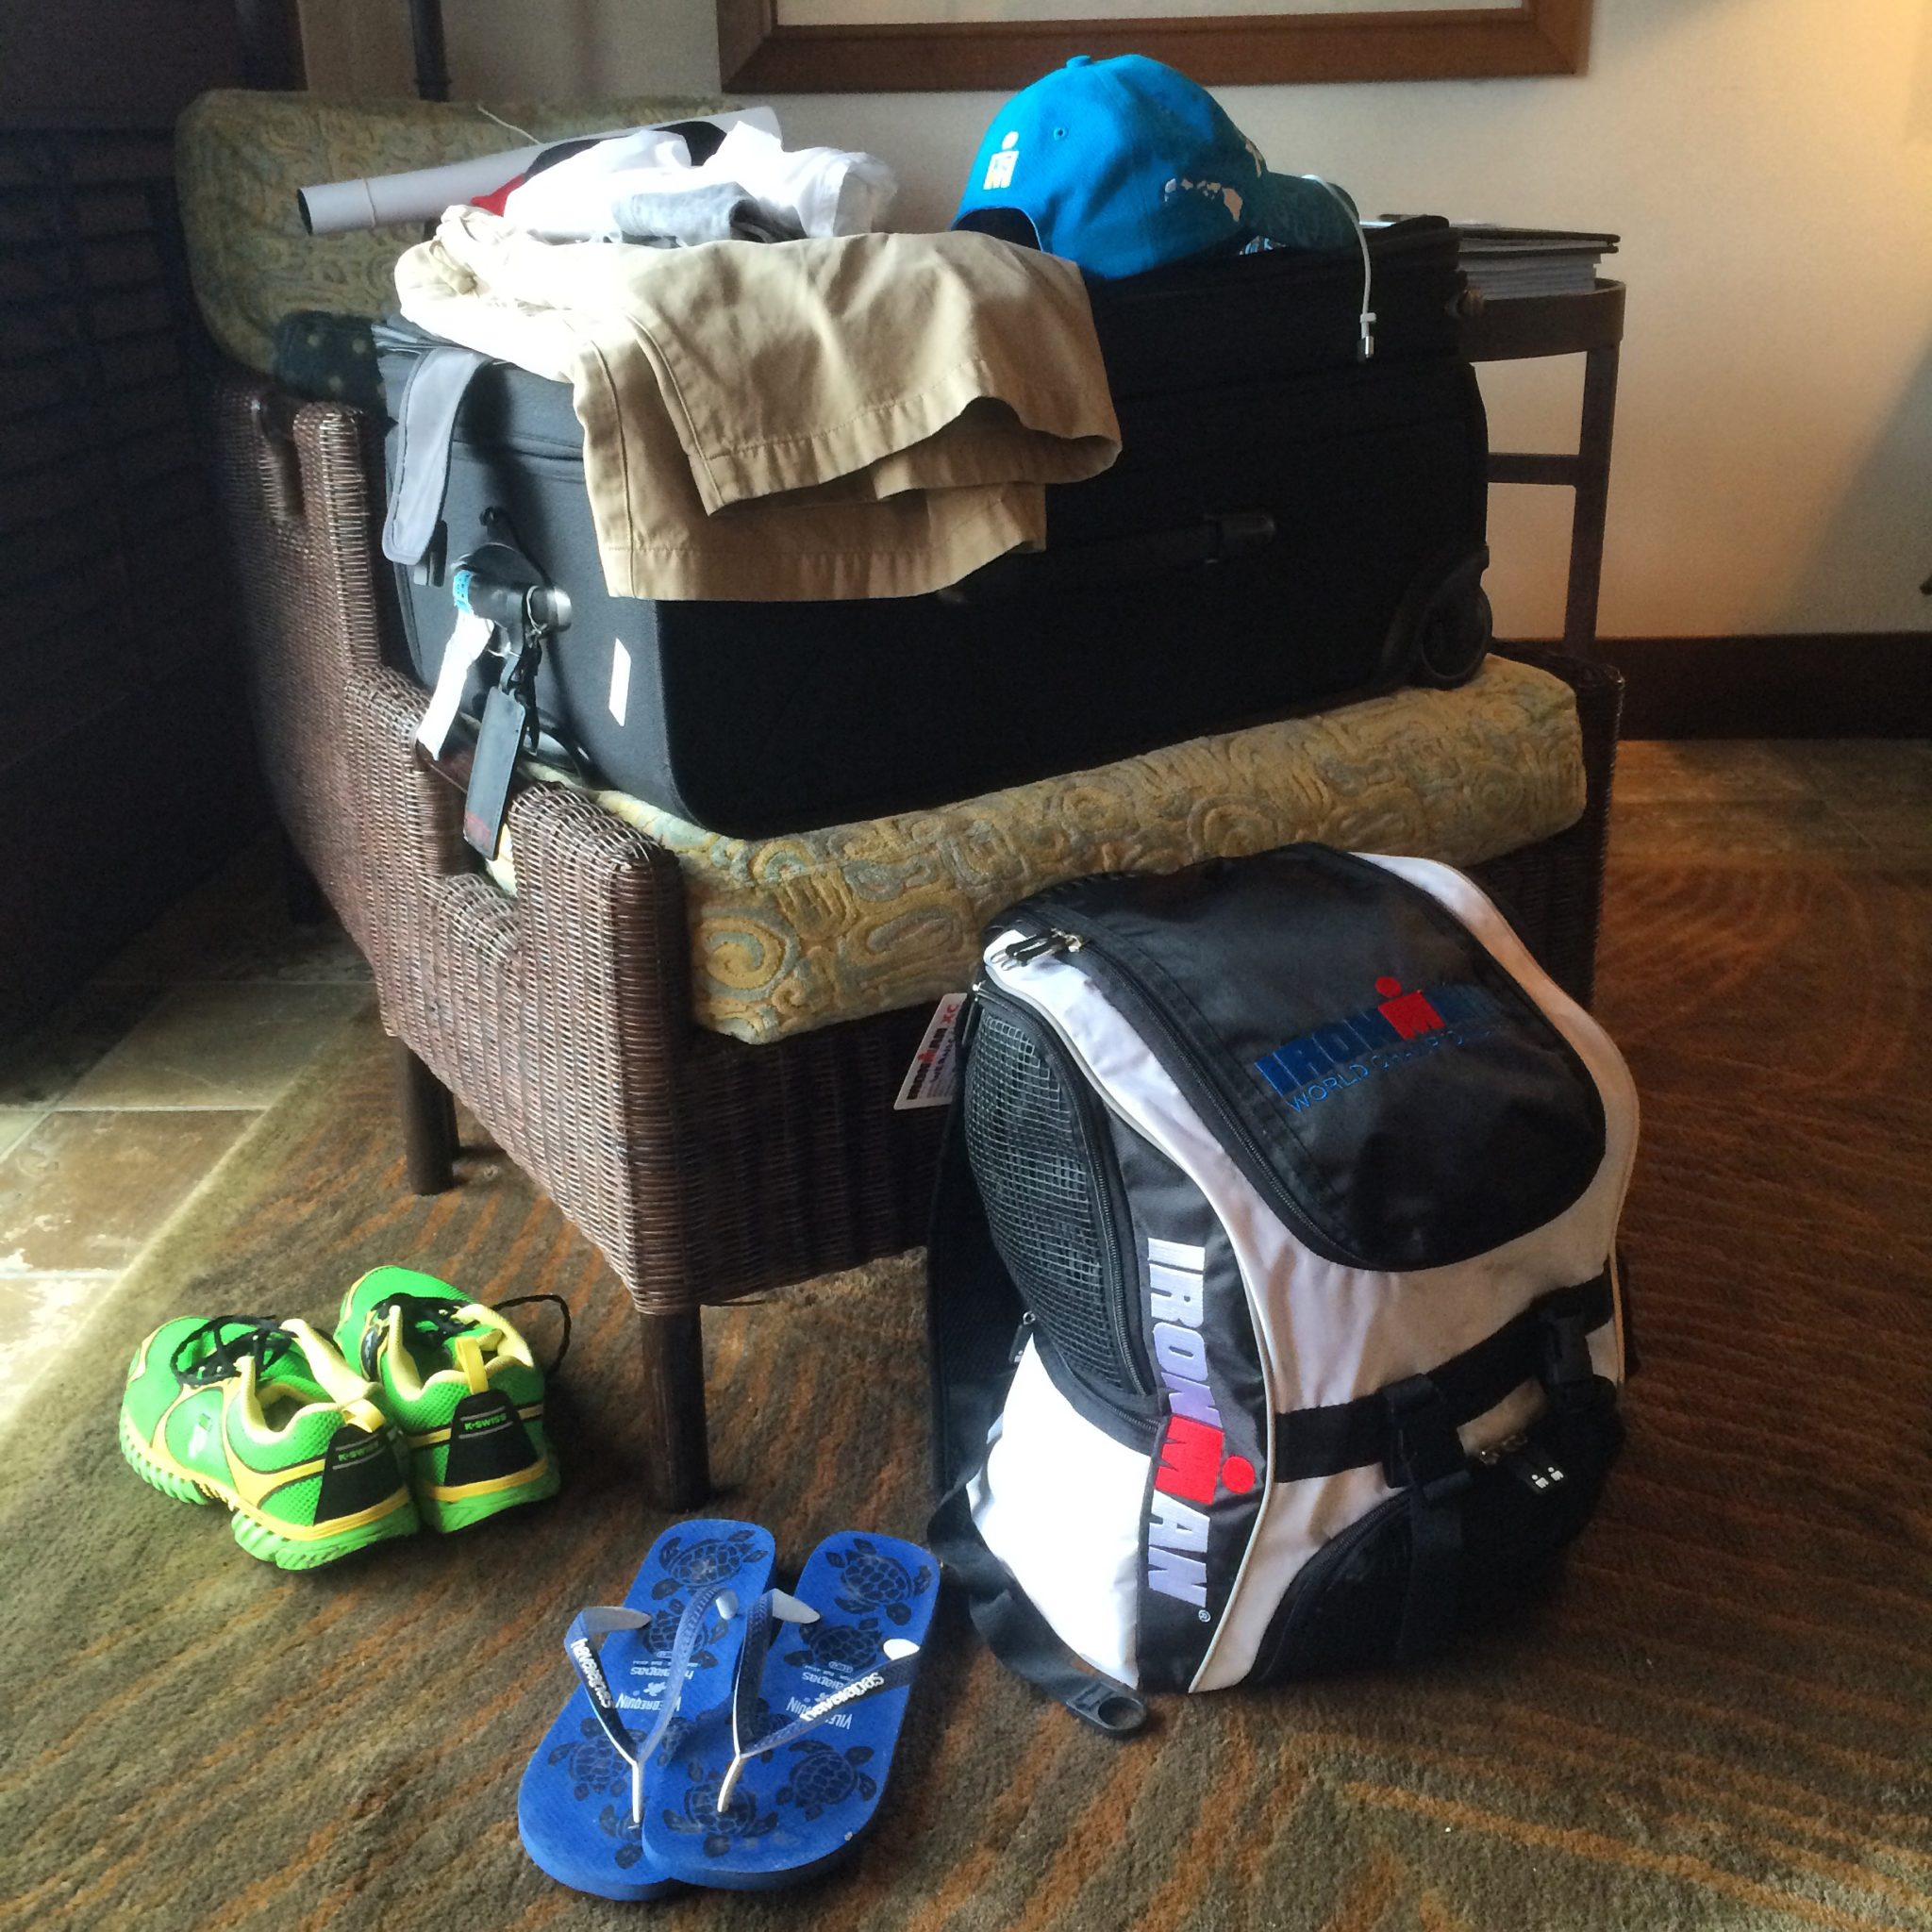 when should I clean my luggage